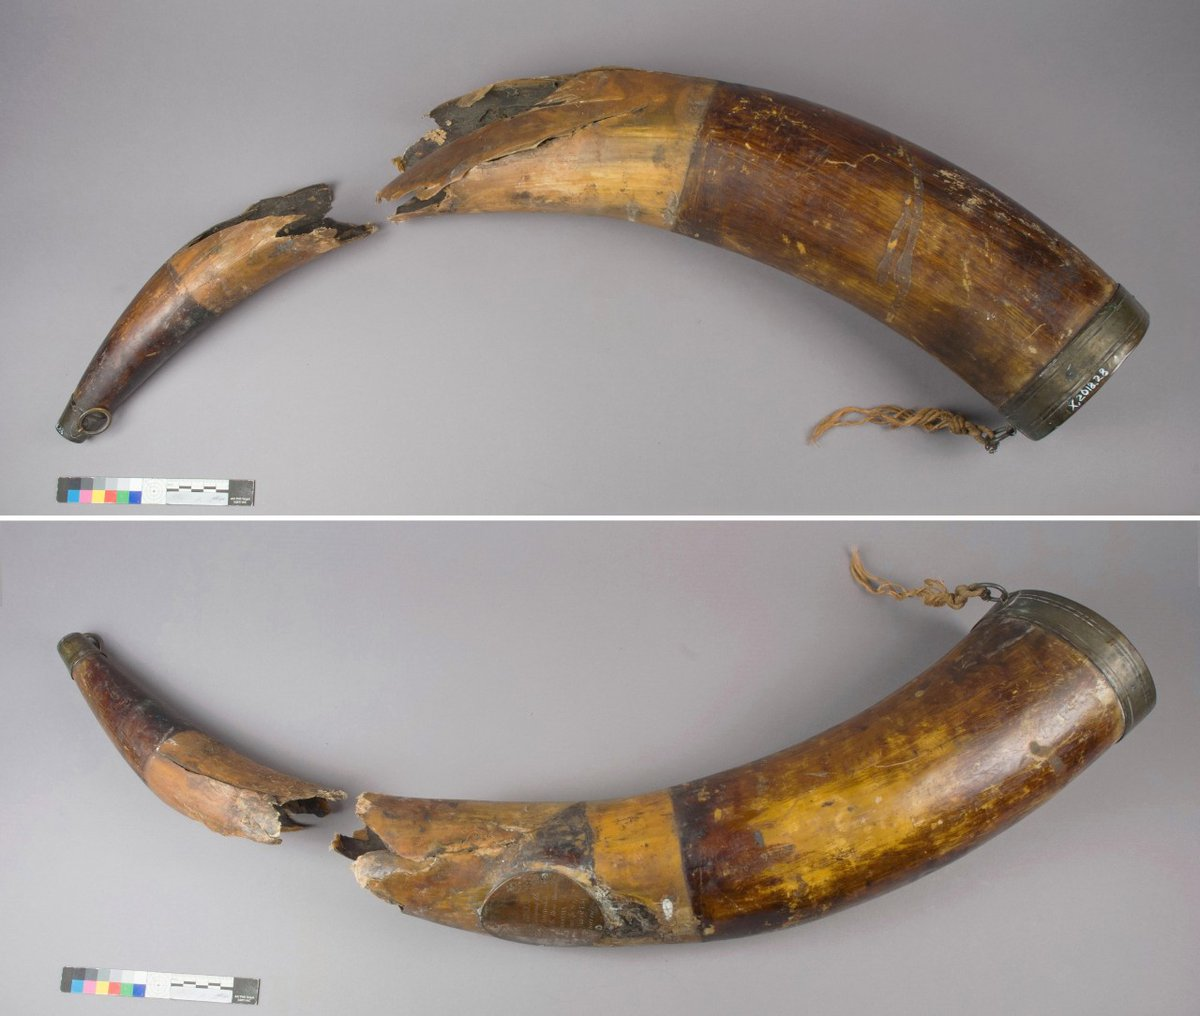 test Twitter Media - On the blog: conservator Lydia Messerschmidt documents the conservation of a military bugle horn  In part 1 of this 2-part blog she assesses the damage and what its condition tells us about its history.   👌 Includes some very satisfying time lapses   https://t.co/3v6pXq4jev https://t.co/BpoSNfPtbR